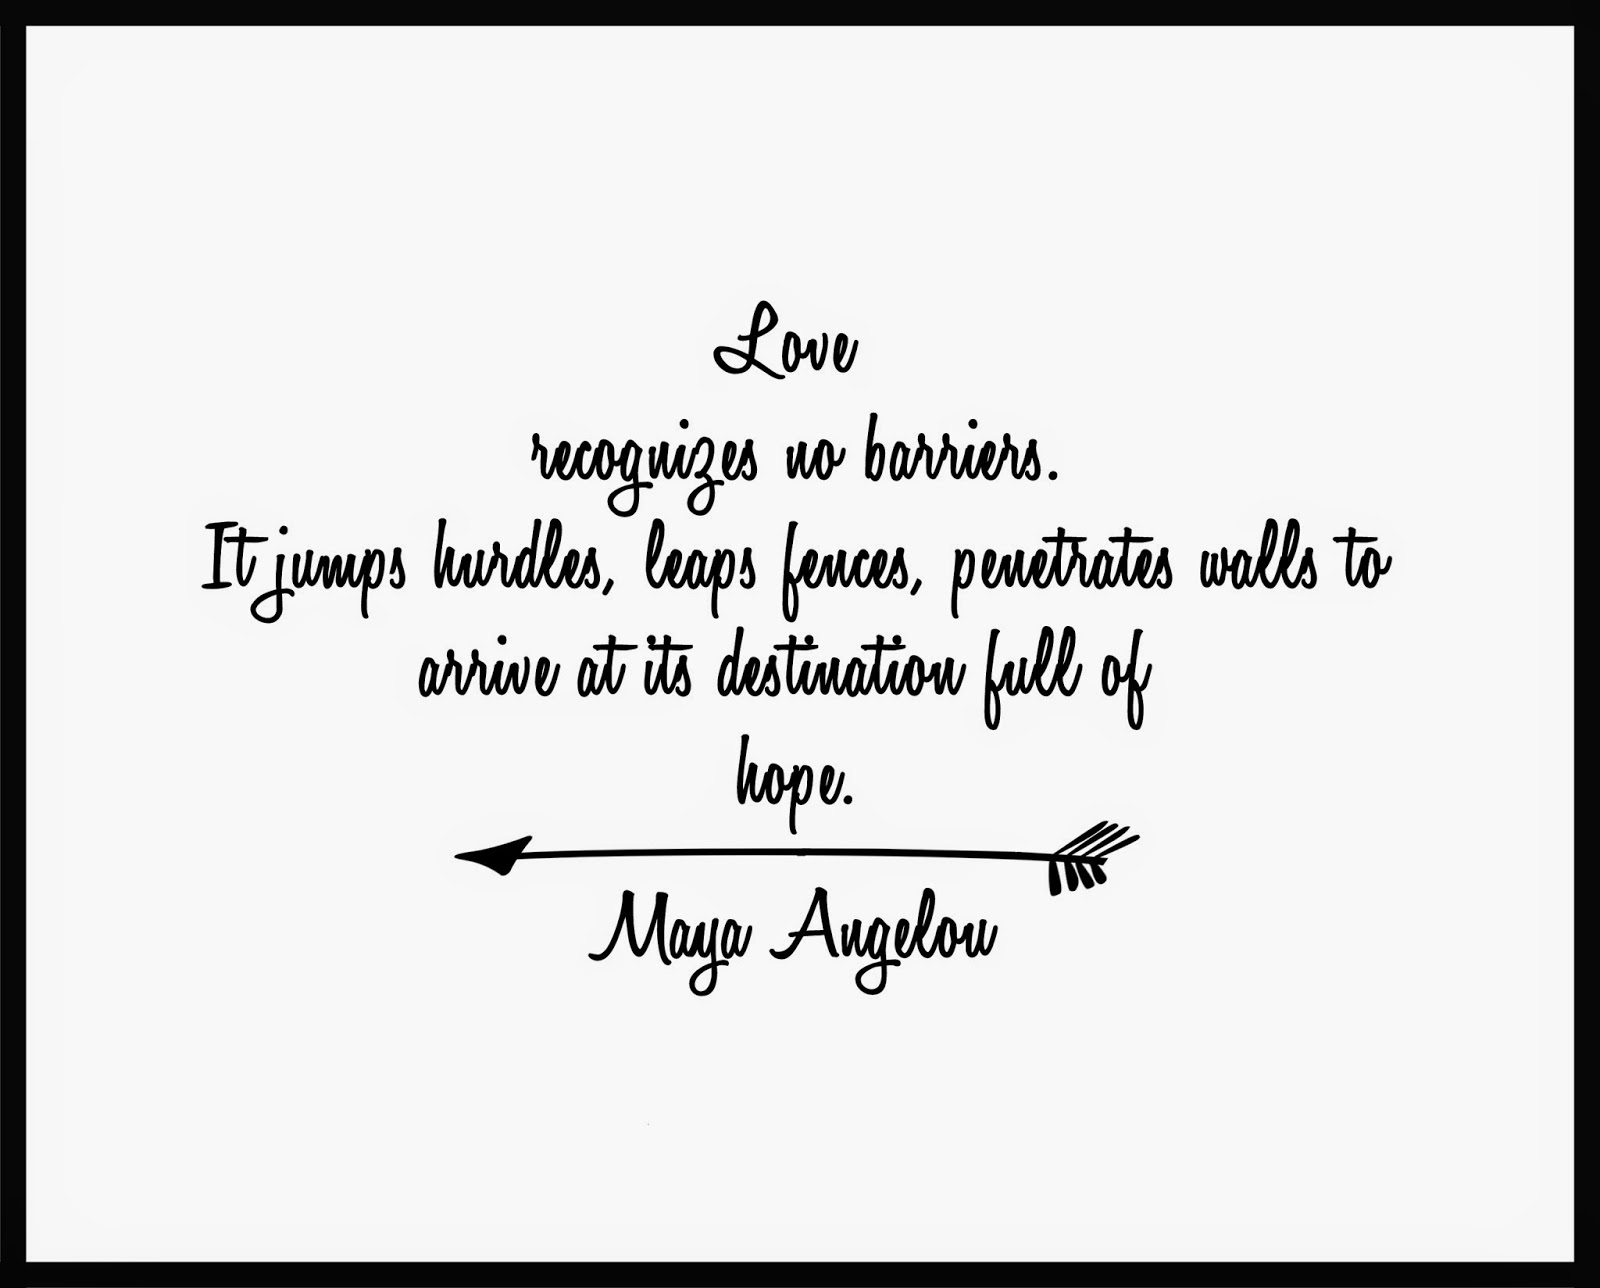 Maya Angelou Quotes About Friendship Friendship Quotemaya Angelou Maya Angelou Quotes About